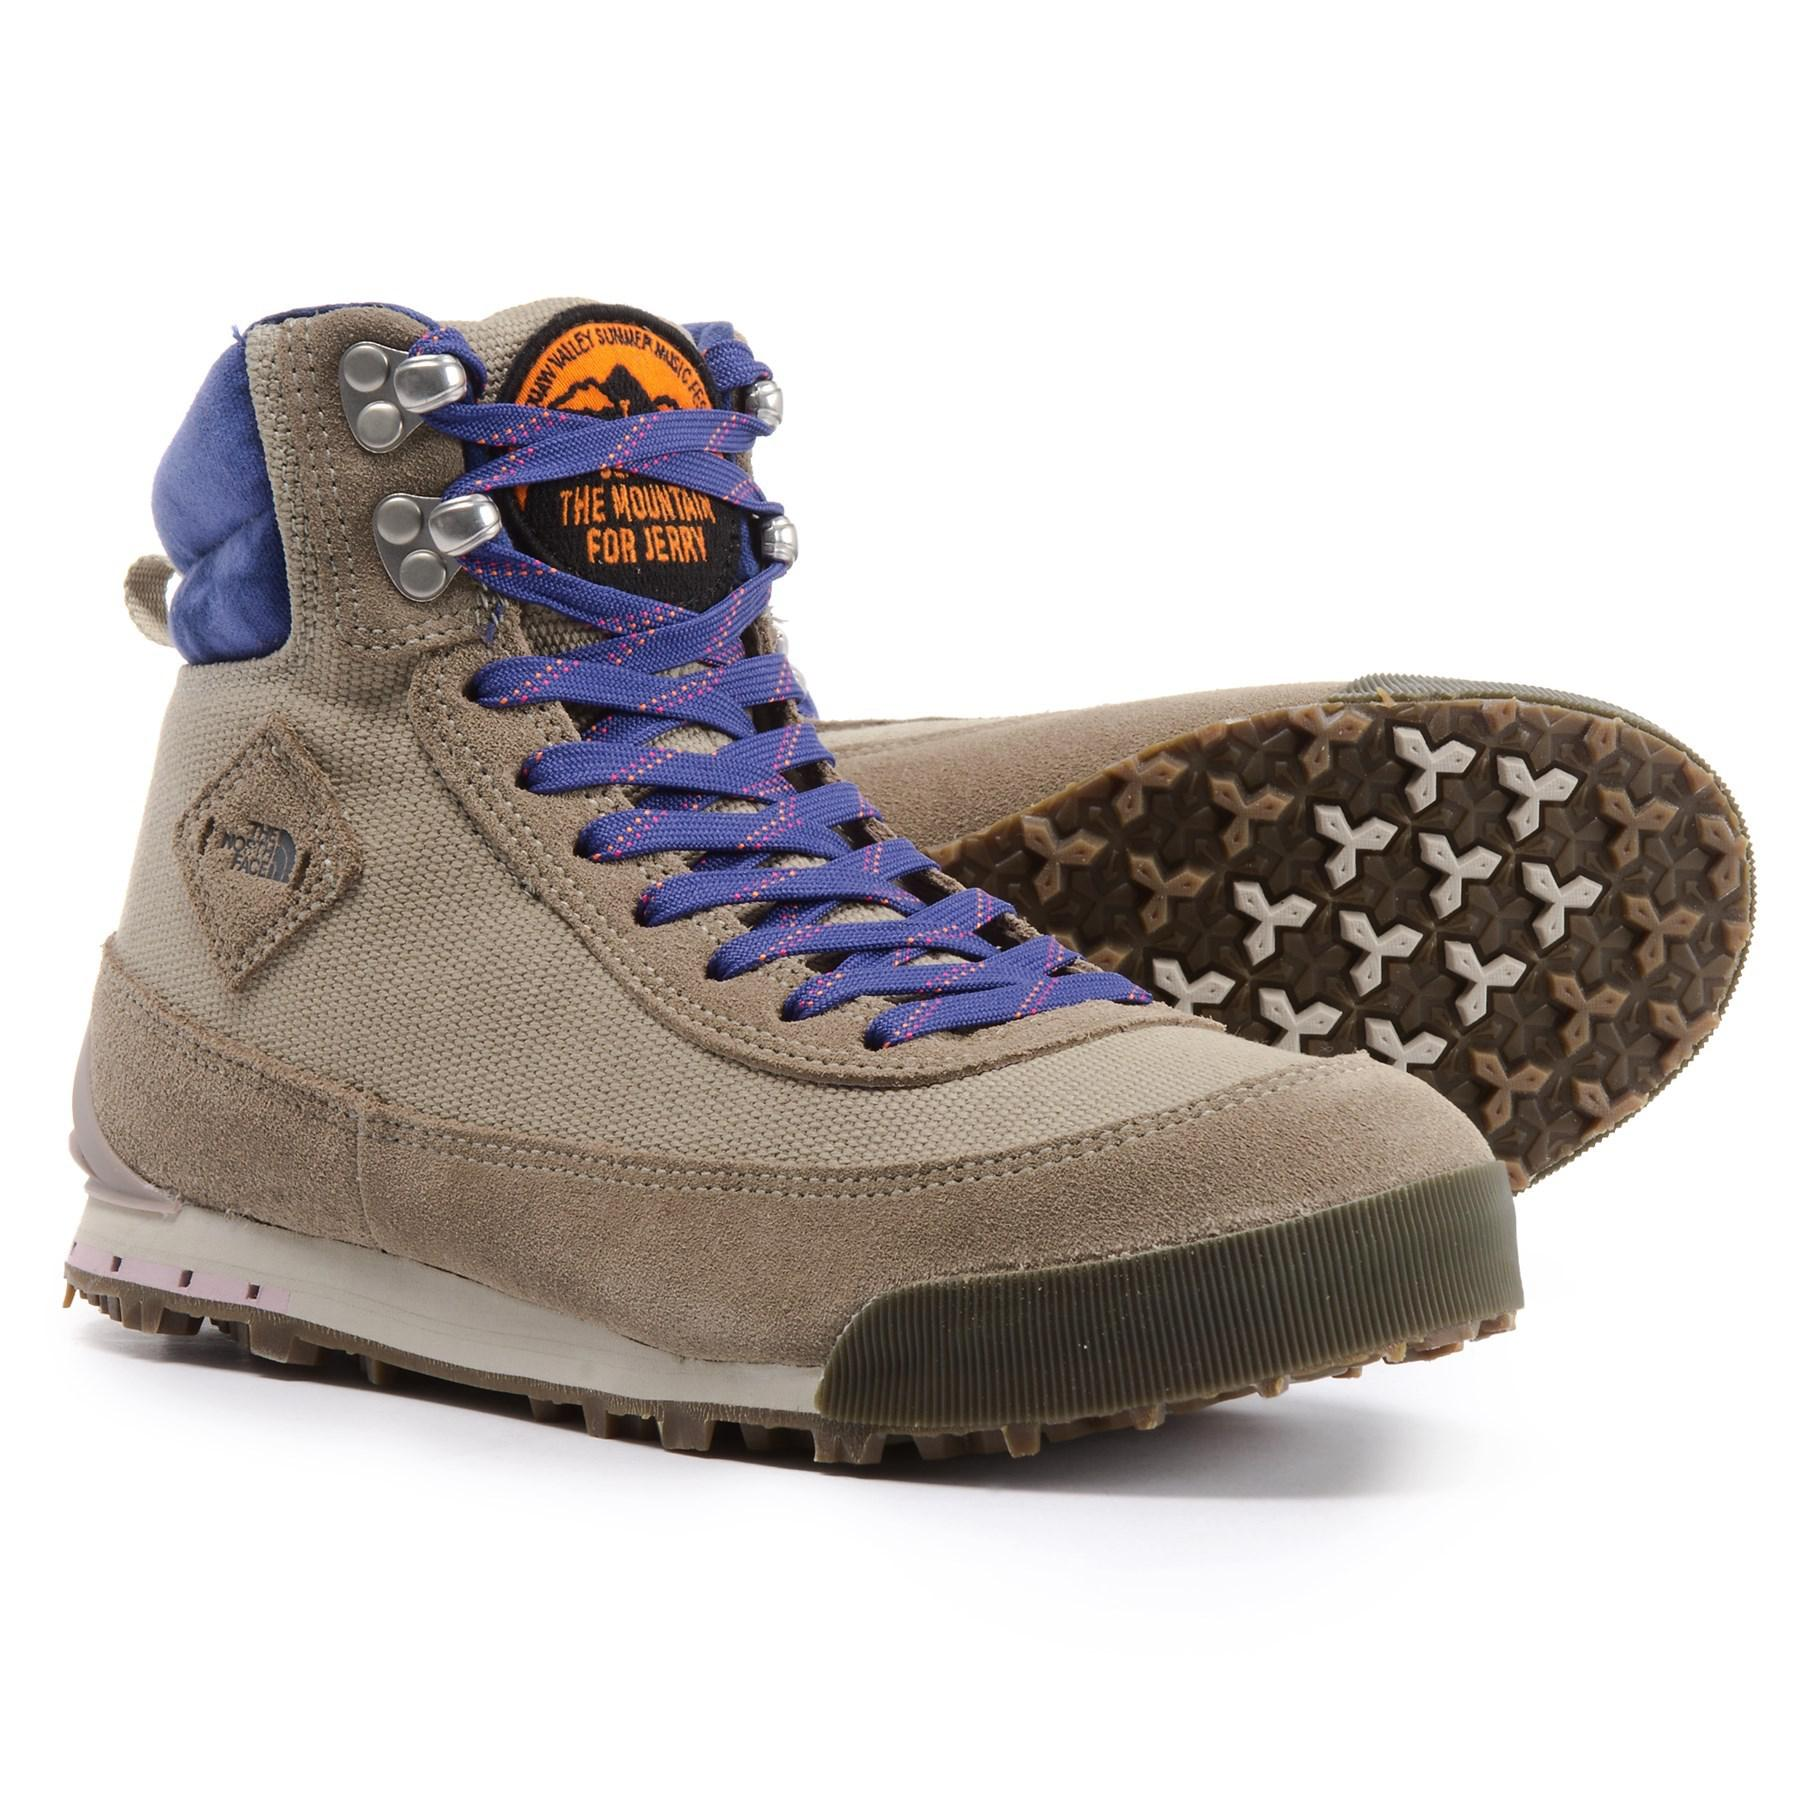 north face back to berkeley boot womens